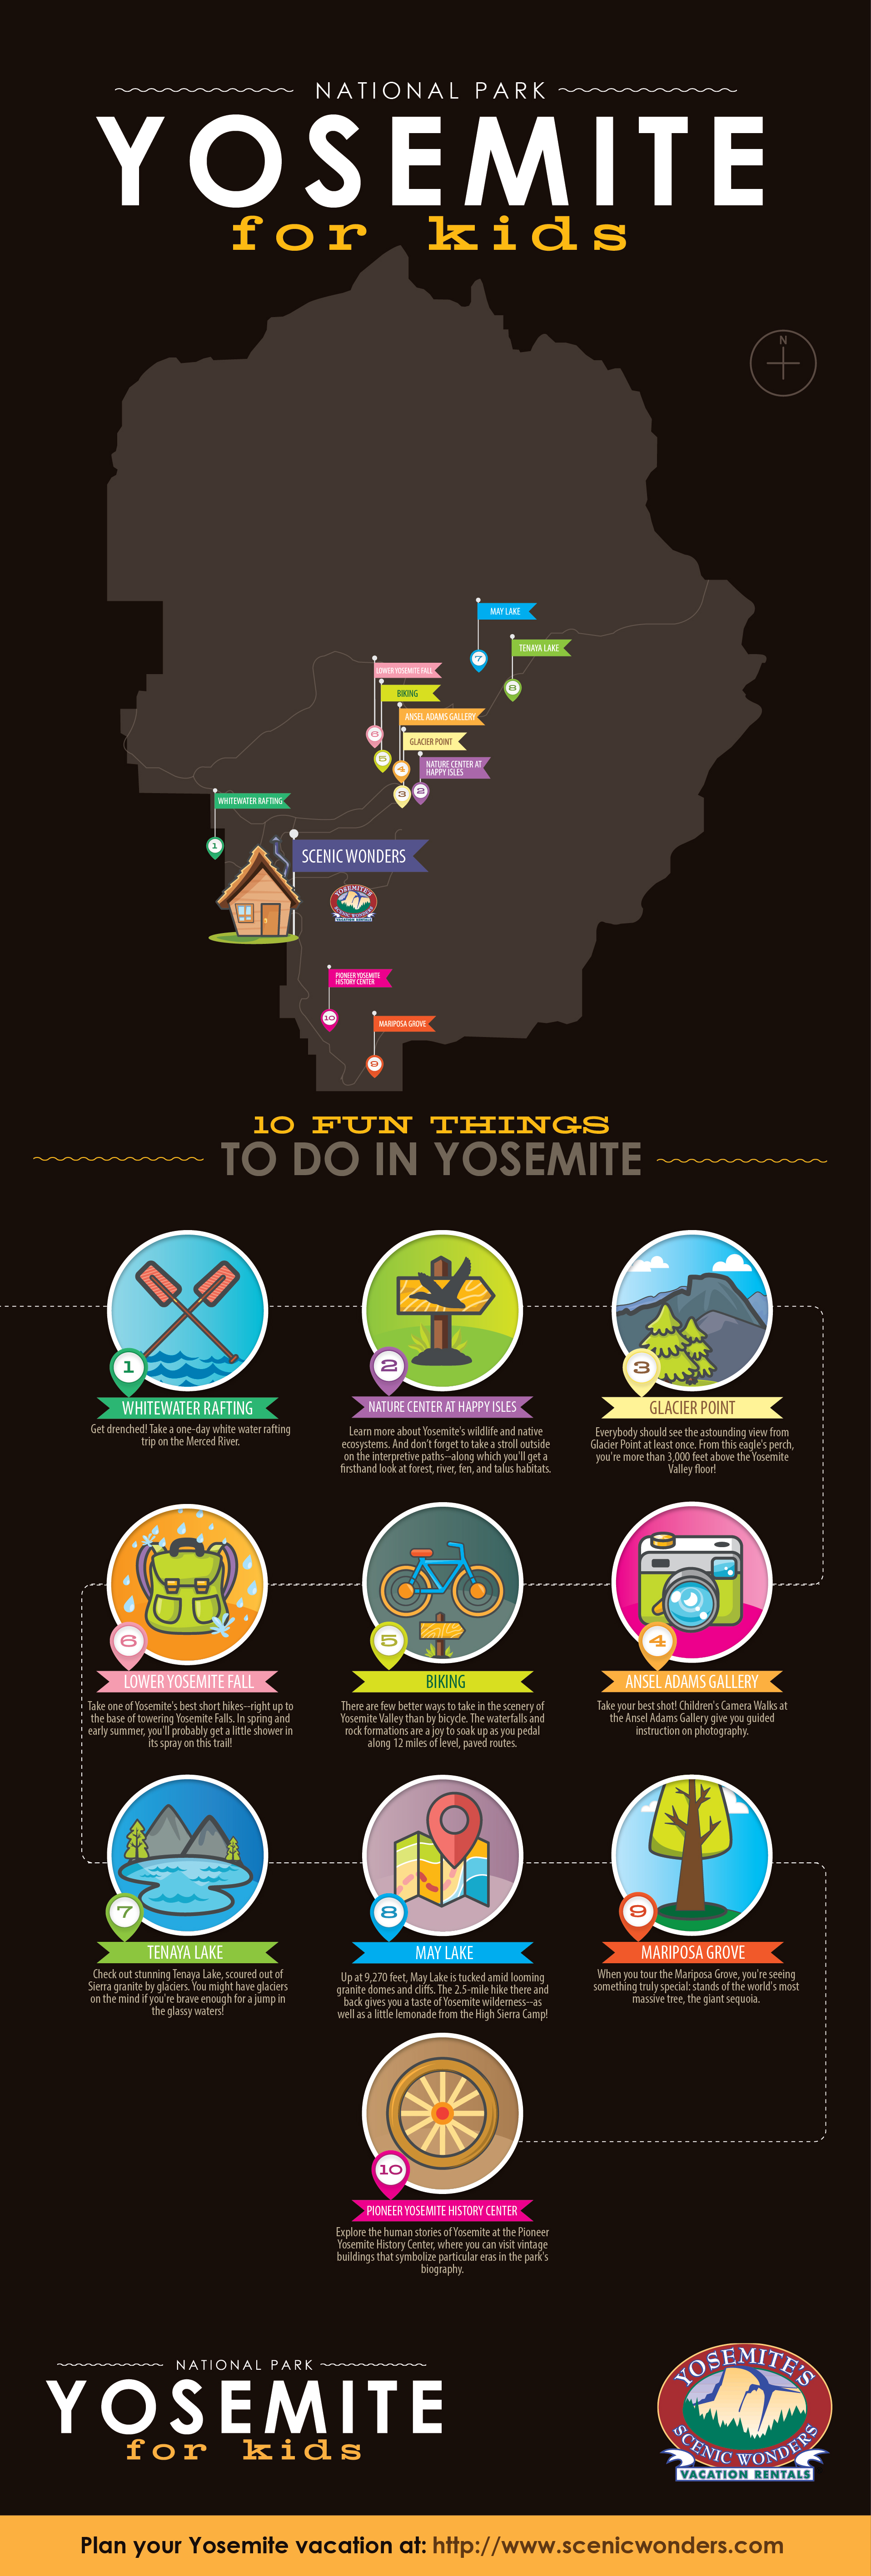 Yosemite For Kids Infographic1